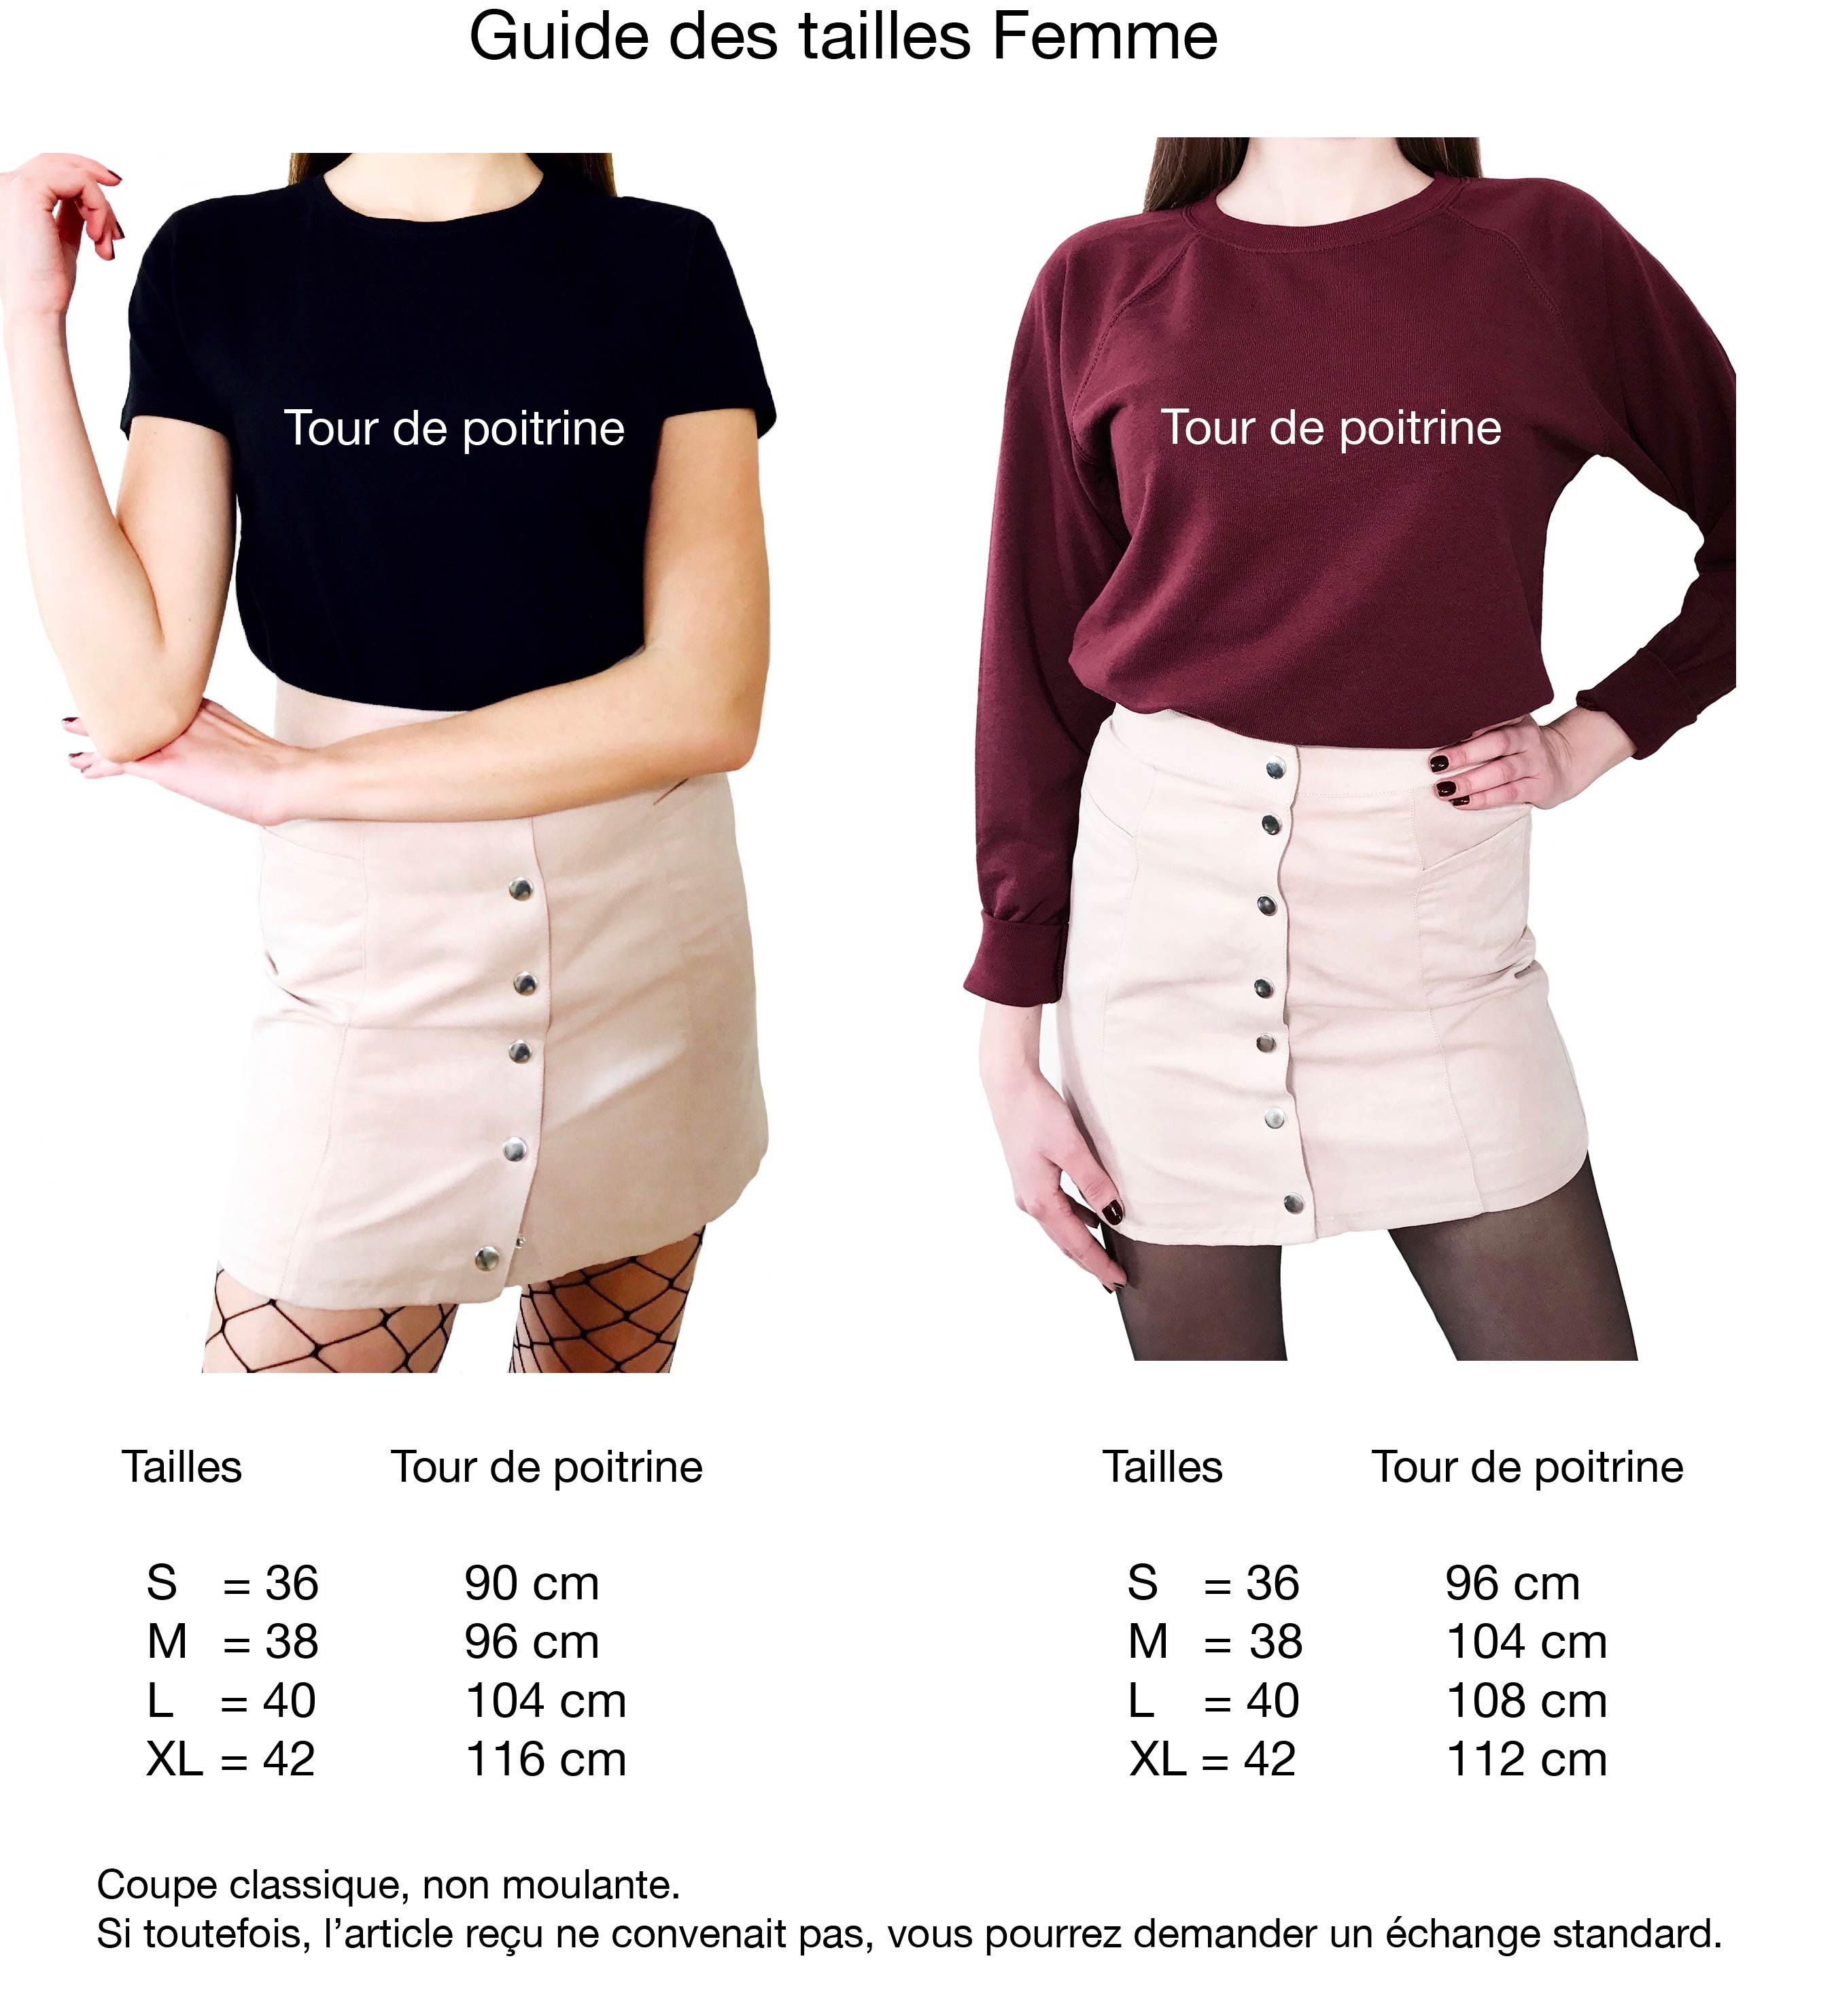 guide tailles femmes